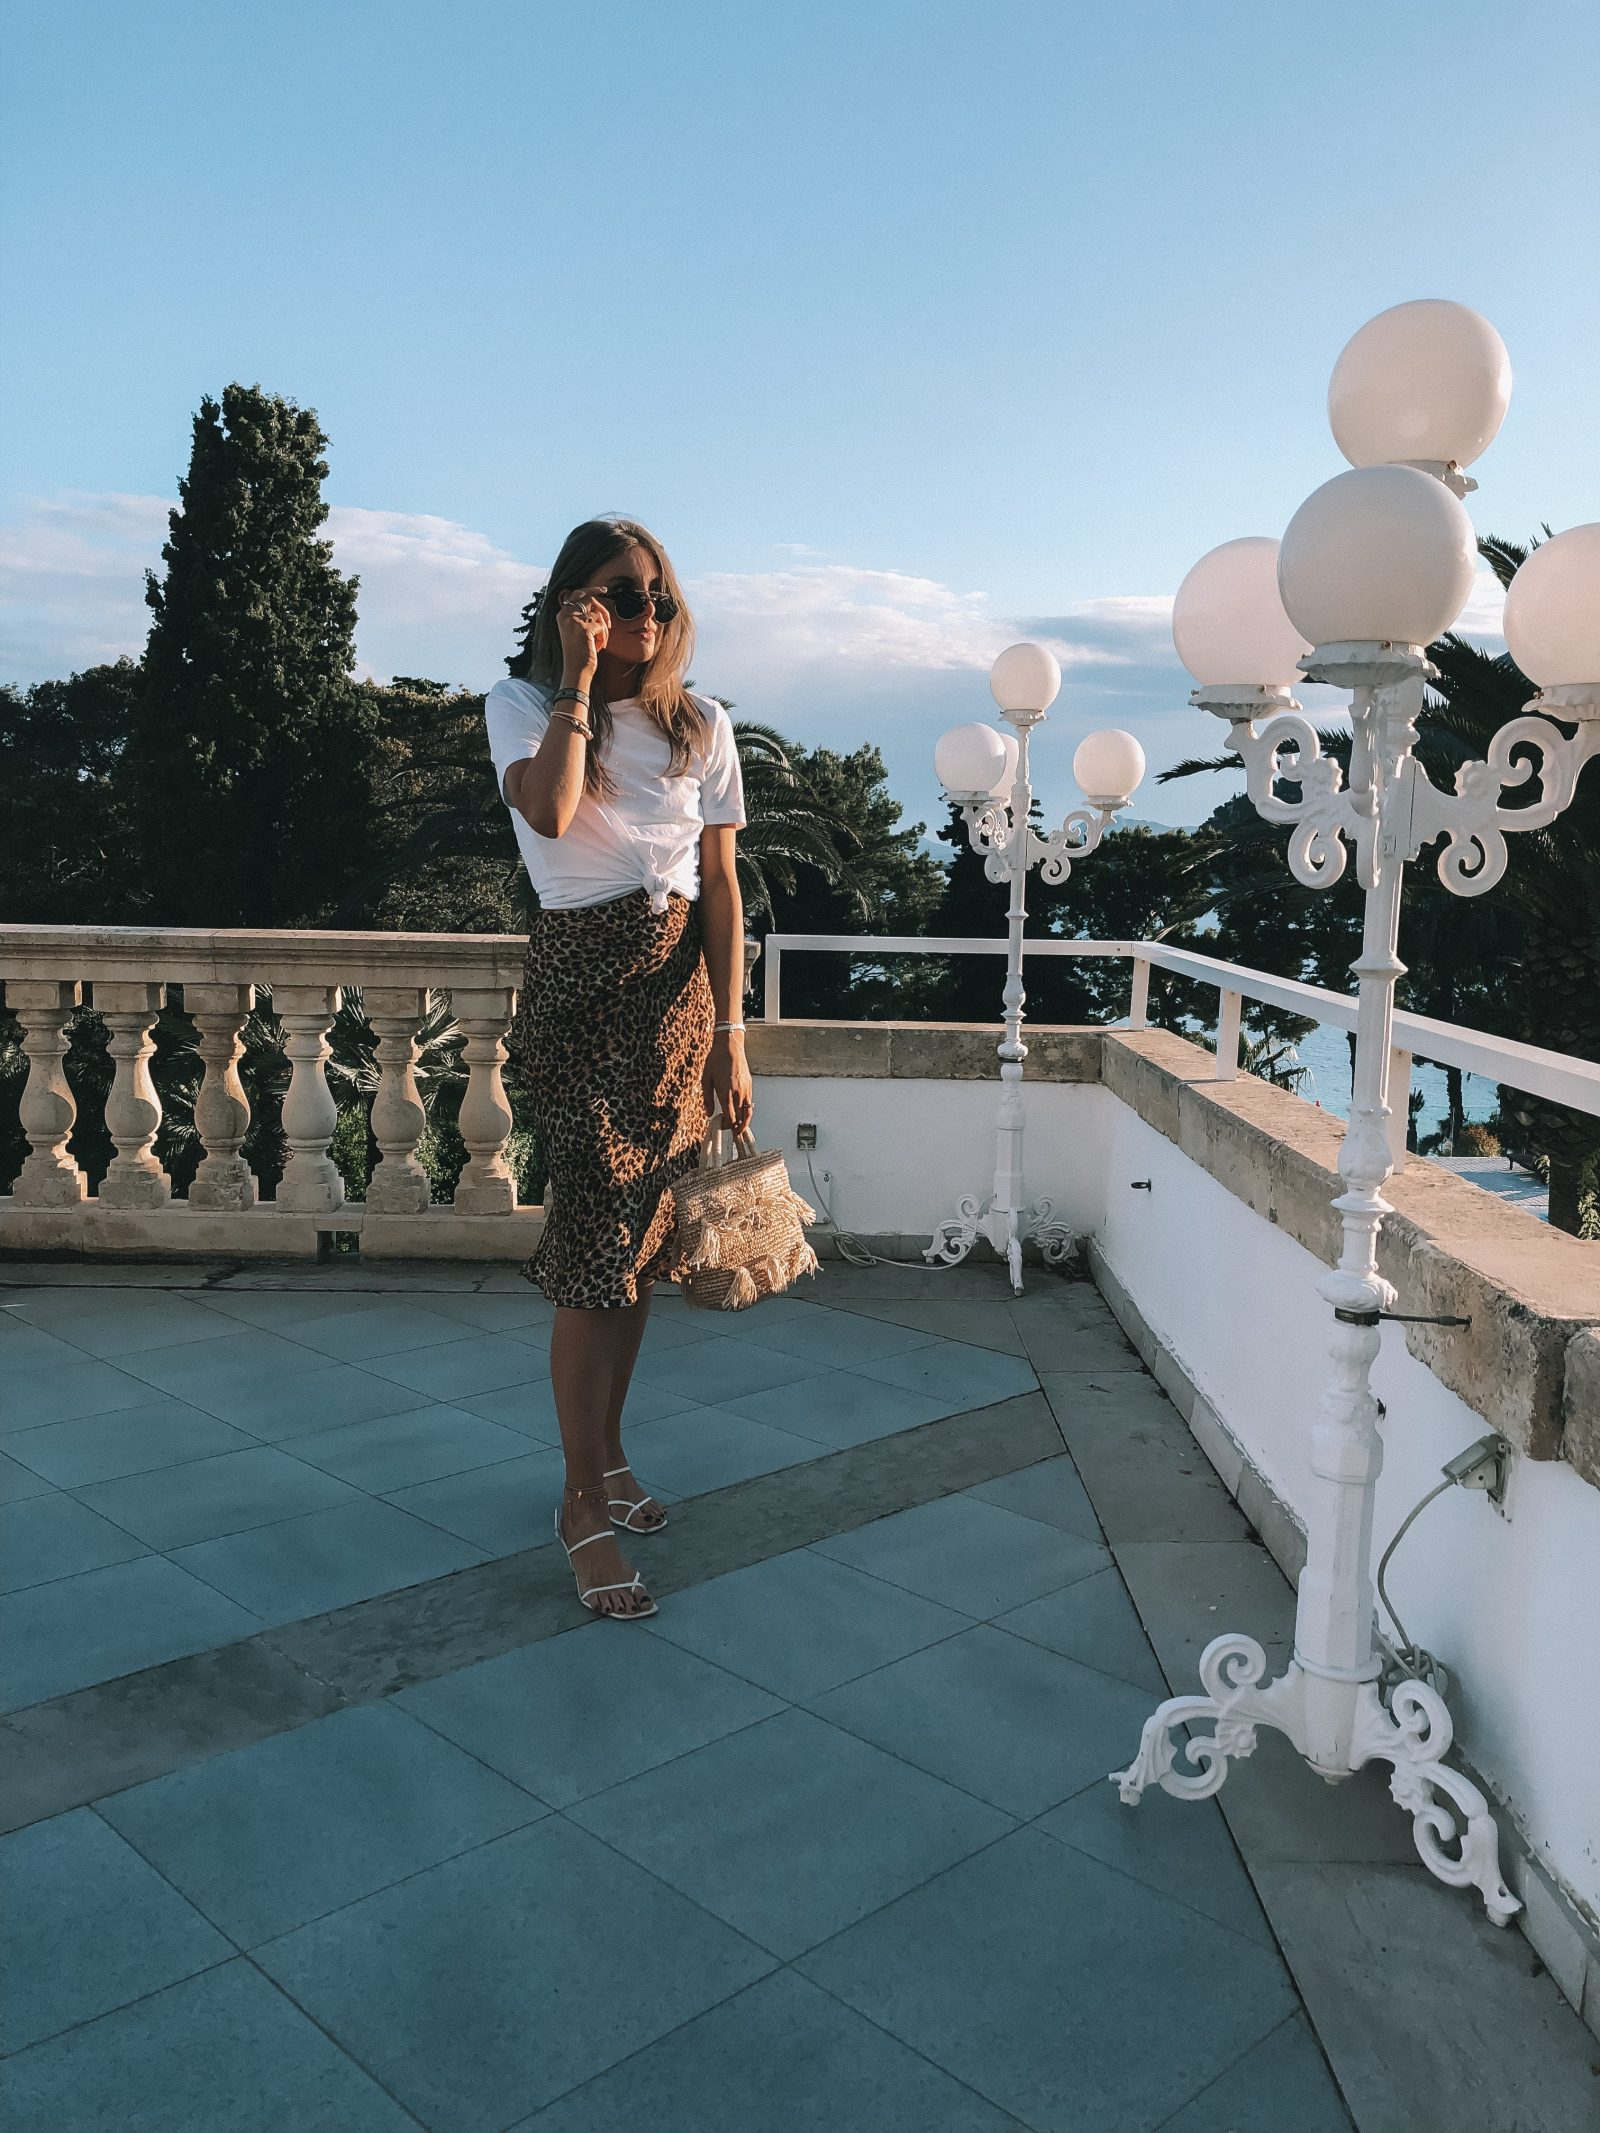 Nanushka Midi Skirt - Holiday Outfit Idea in Mallorca - Royal Hideaway Hotel Formentor